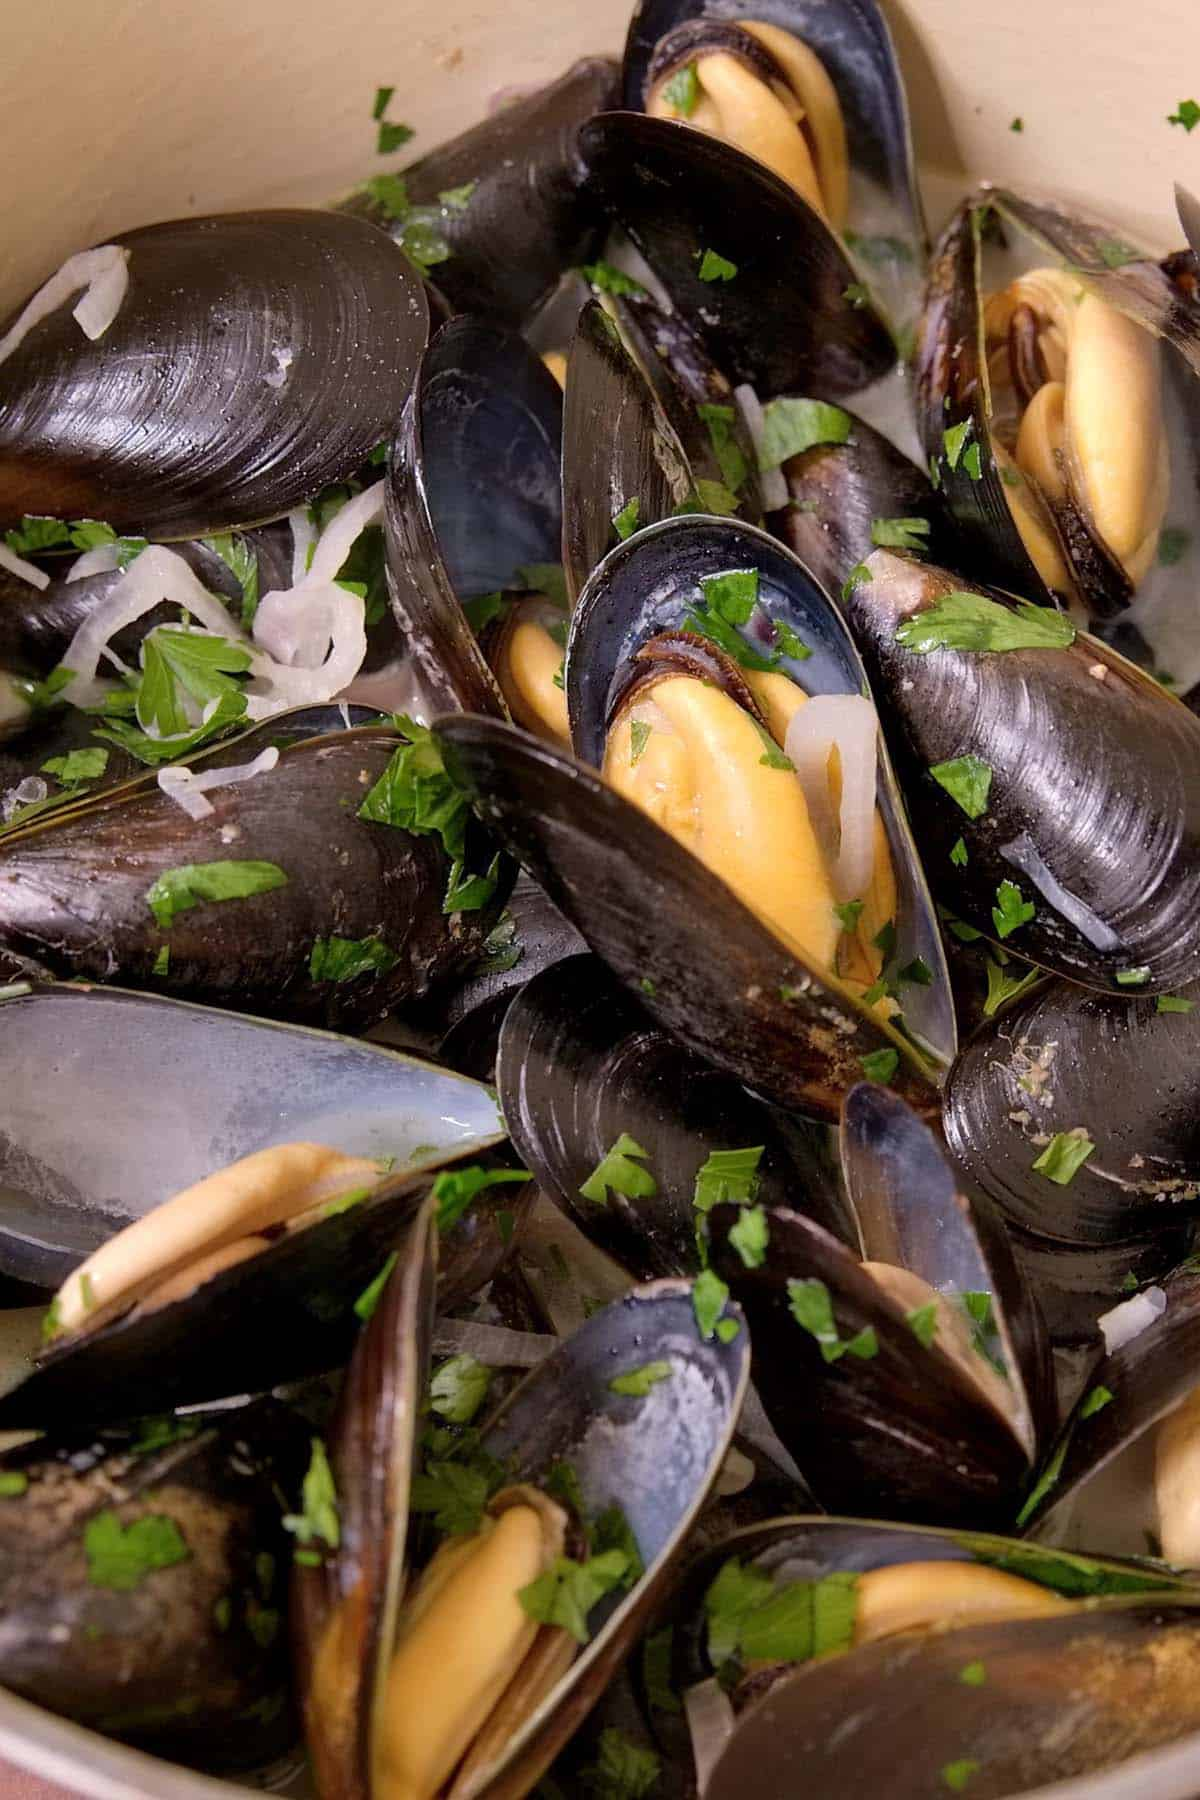 Steamed Mussels with shallots, garlic, parsley and a white wine broth